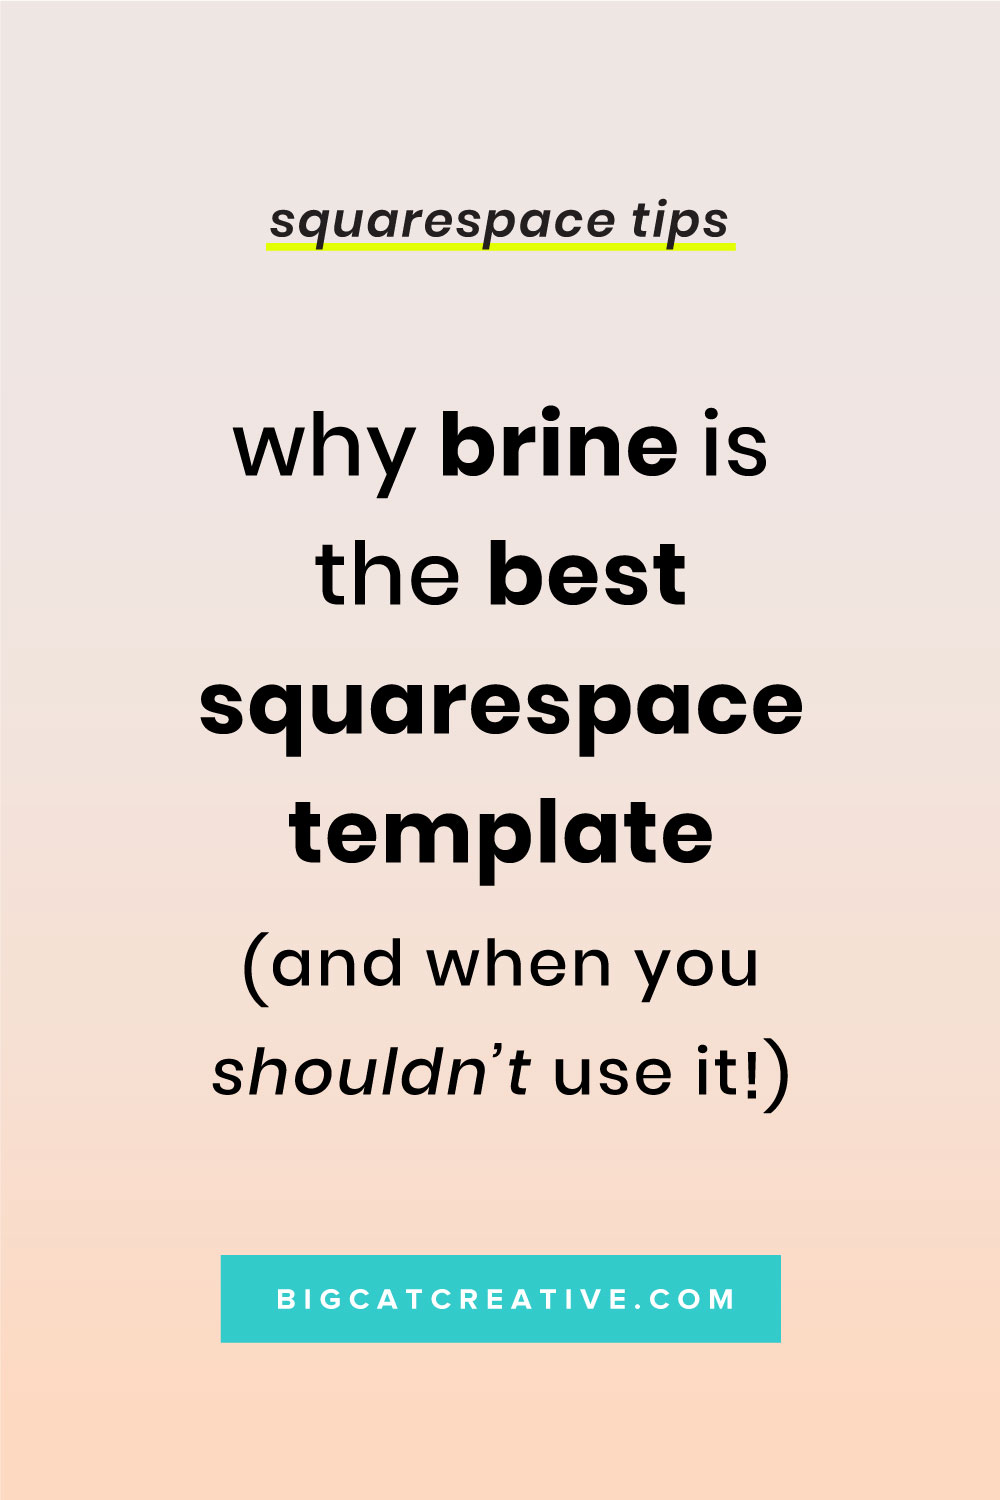 Why Brine is the Best Squarespace Template & When you Shouldn't use it! By Big Cat Creative | Squarespace Tips | Squarespace Template | DIY Web Design | Website Templates